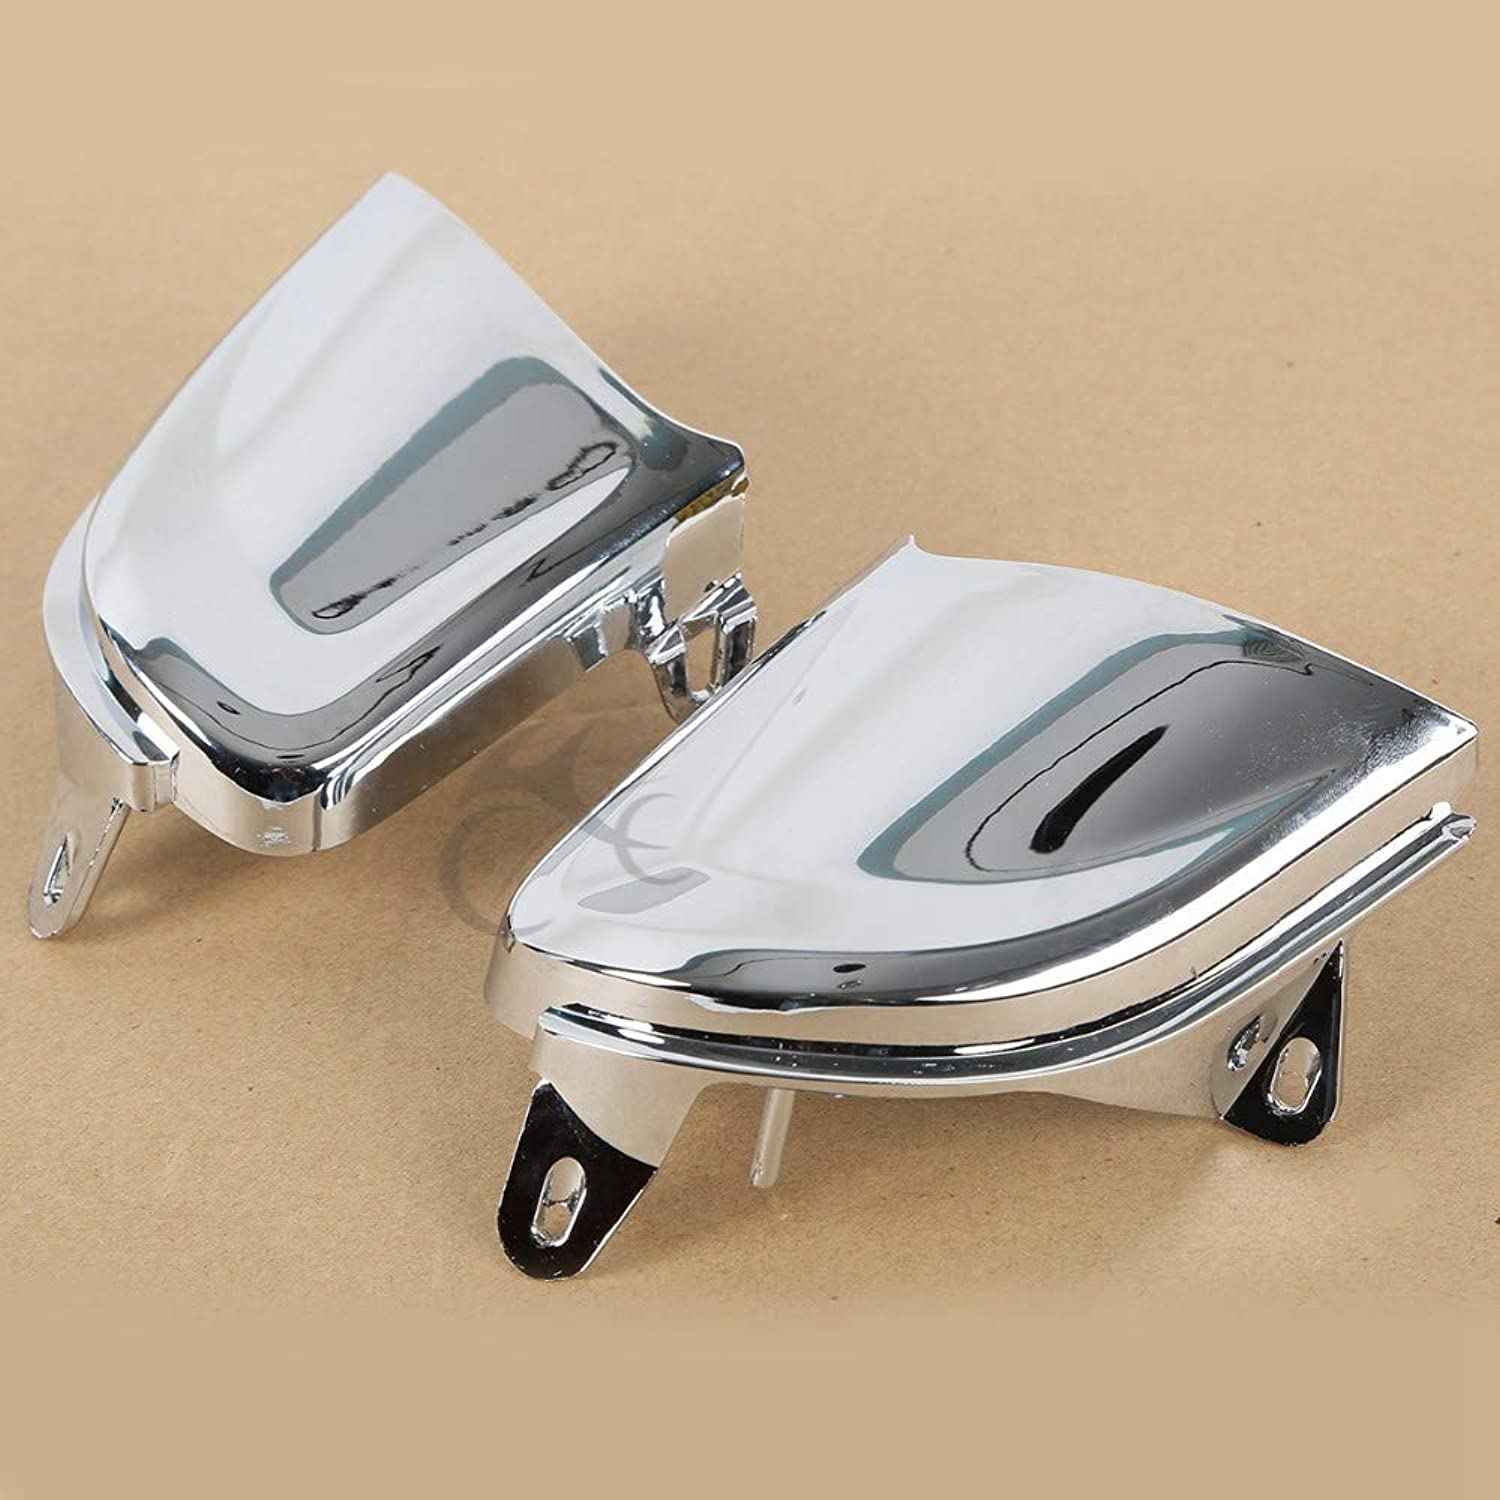 Fincos Front Chrome Headlight Cover Trims for Honda goldwing gold Wing GL1800 20062014